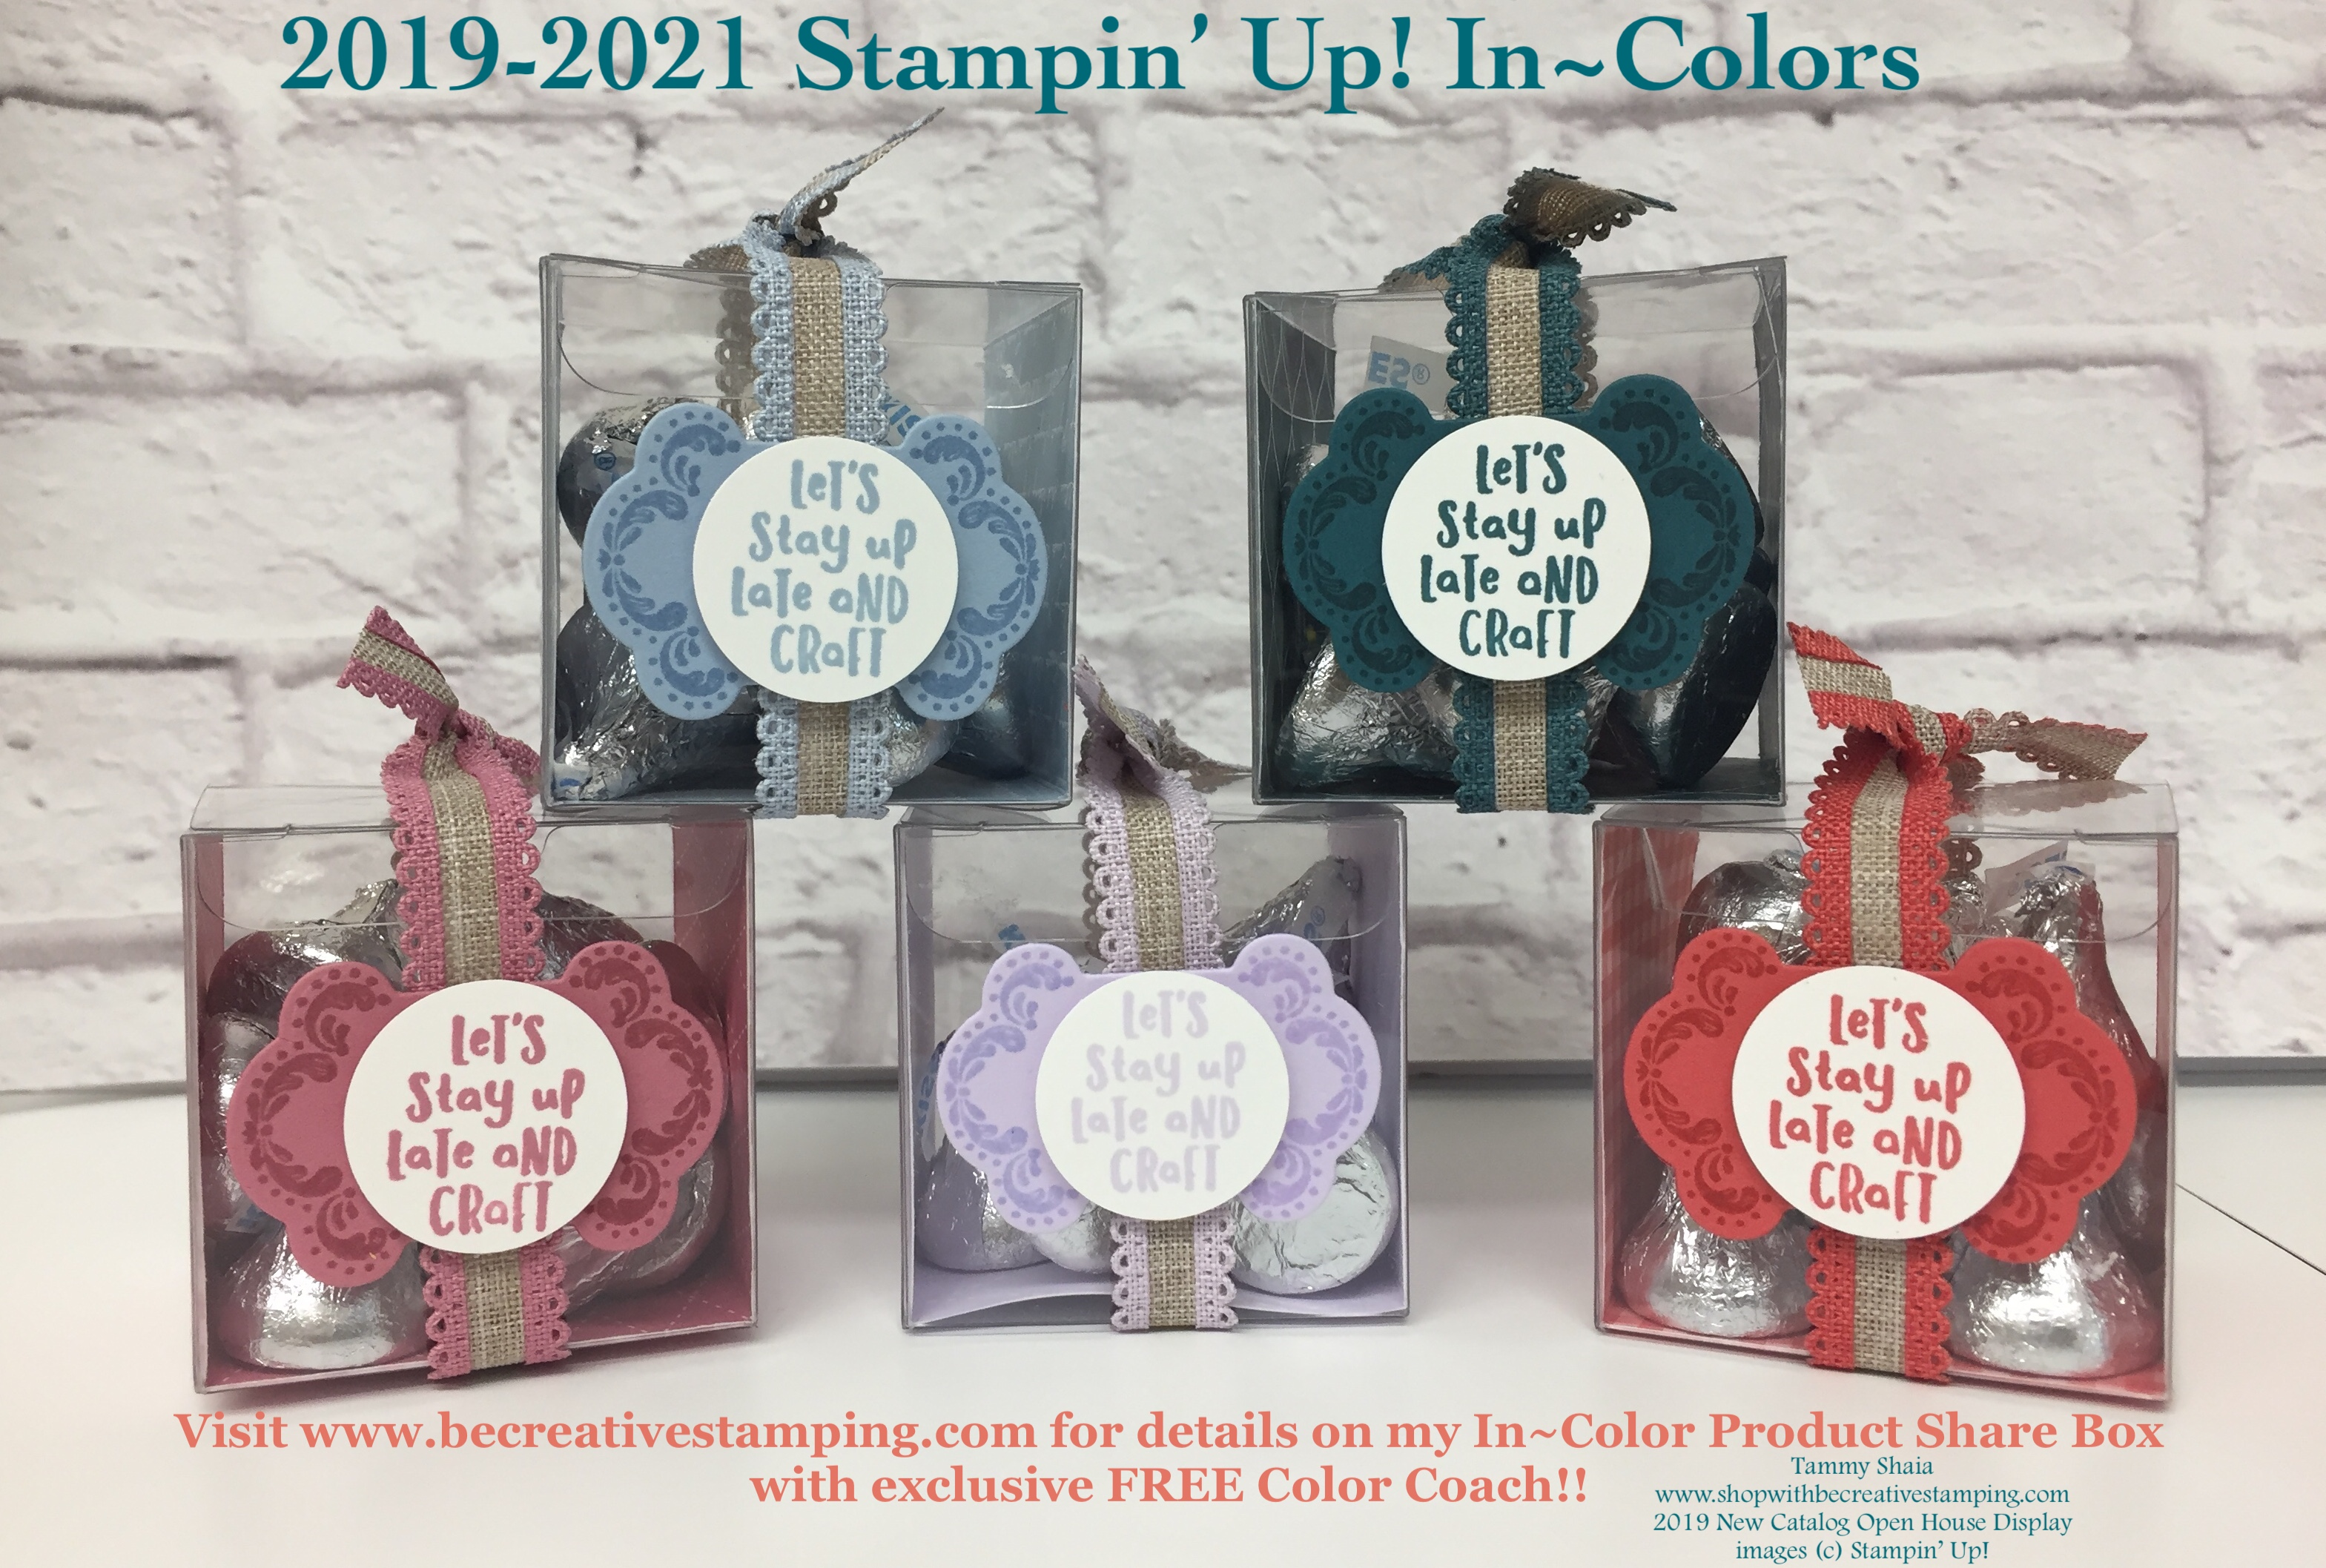 2019-2020 New Stampin' Up! Catalog Open House - Be Creative